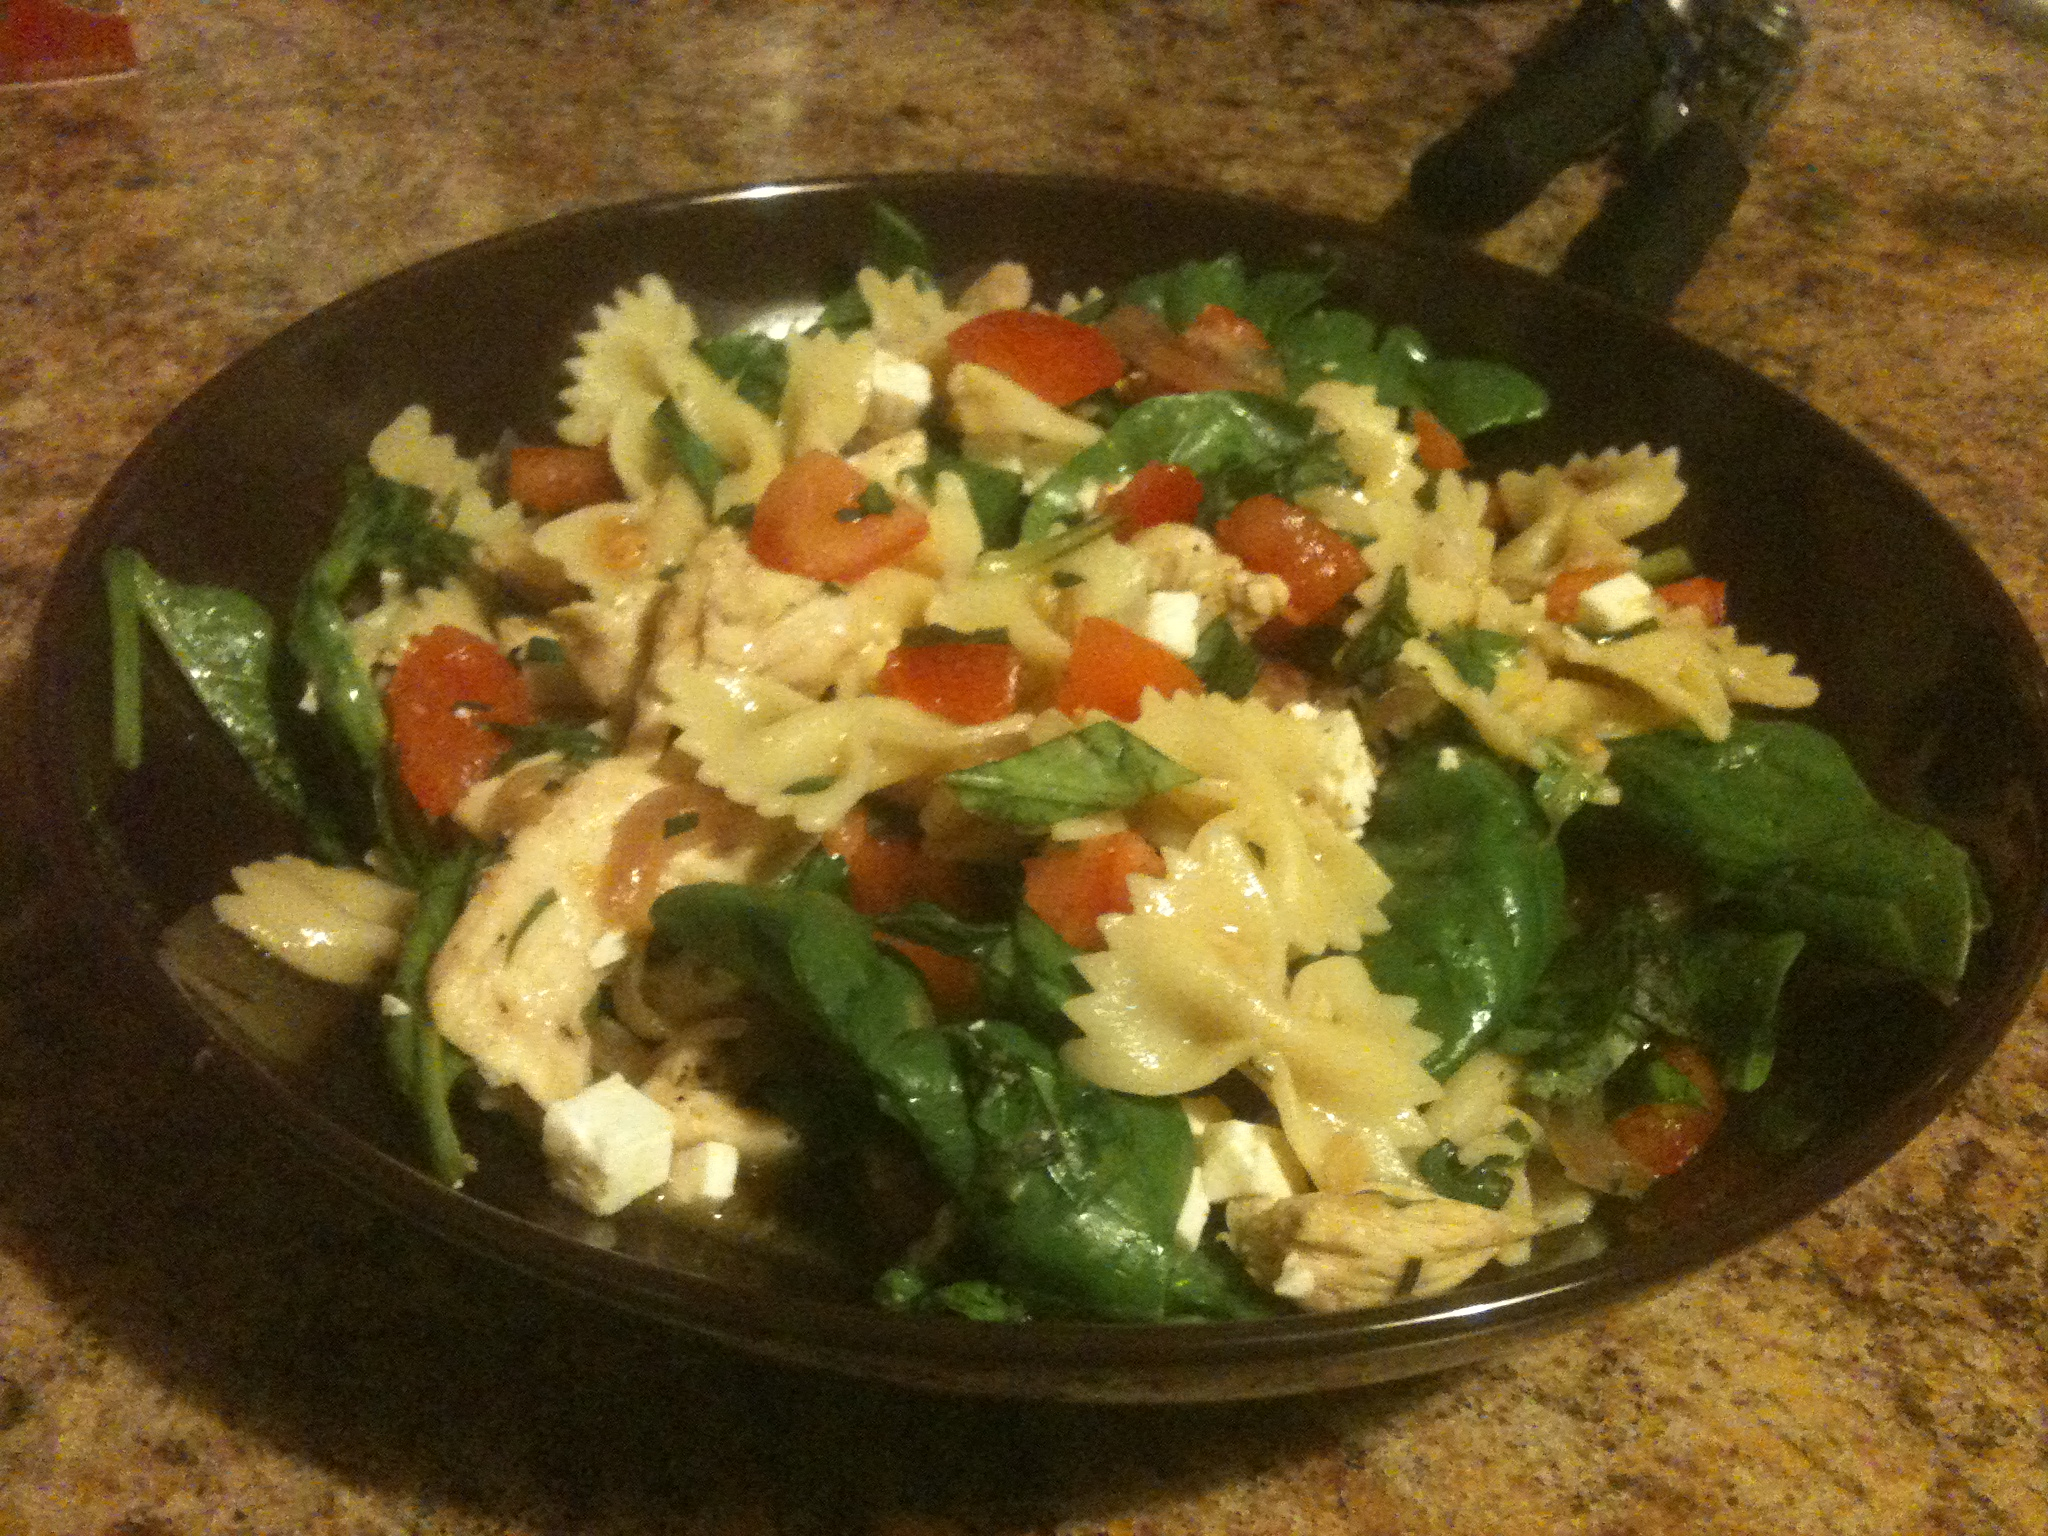 Brooklyn NY :: Farfalle with spinach and veggies